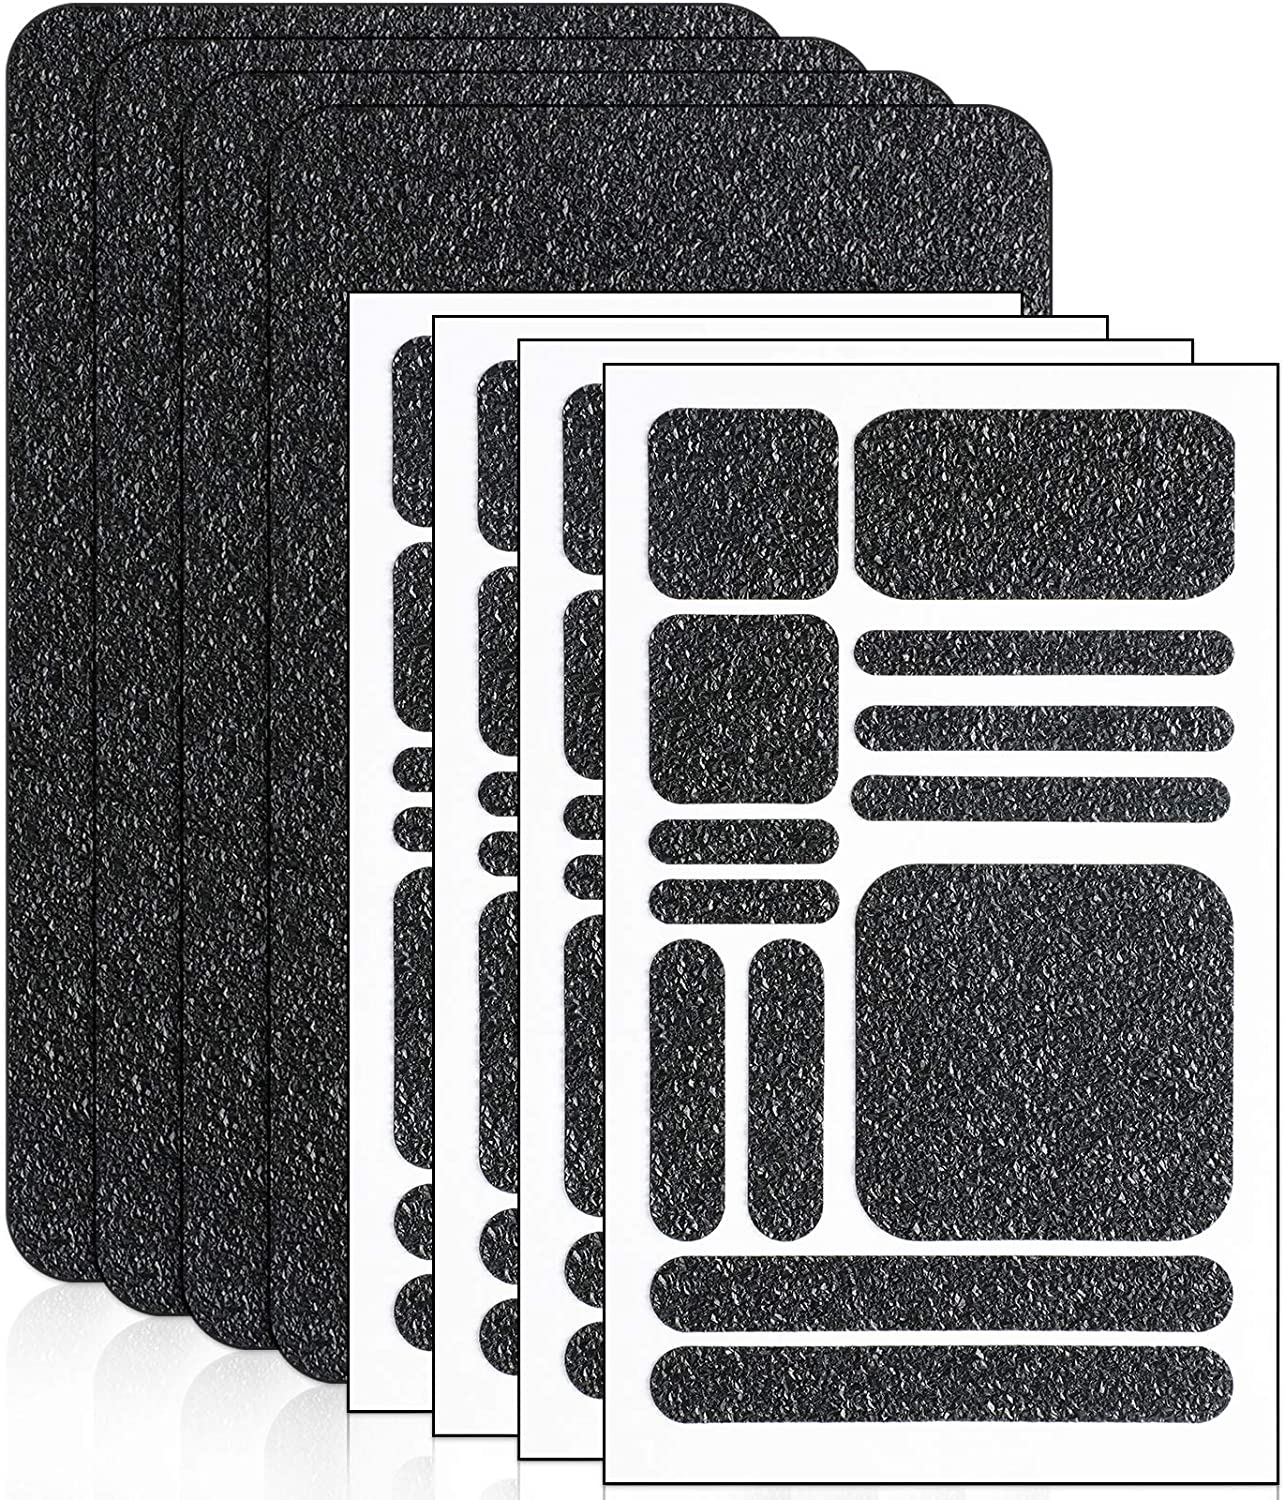 8 Pieces Cell Phone Grip Tapes Stickers Anti-Slip Grip Rubberized Decal Stickers Adhesive Traction Grip Decal Stickers Anti-Slip Textured Phone Tape for Phones Tablet Computer Gaming Cases (Black)